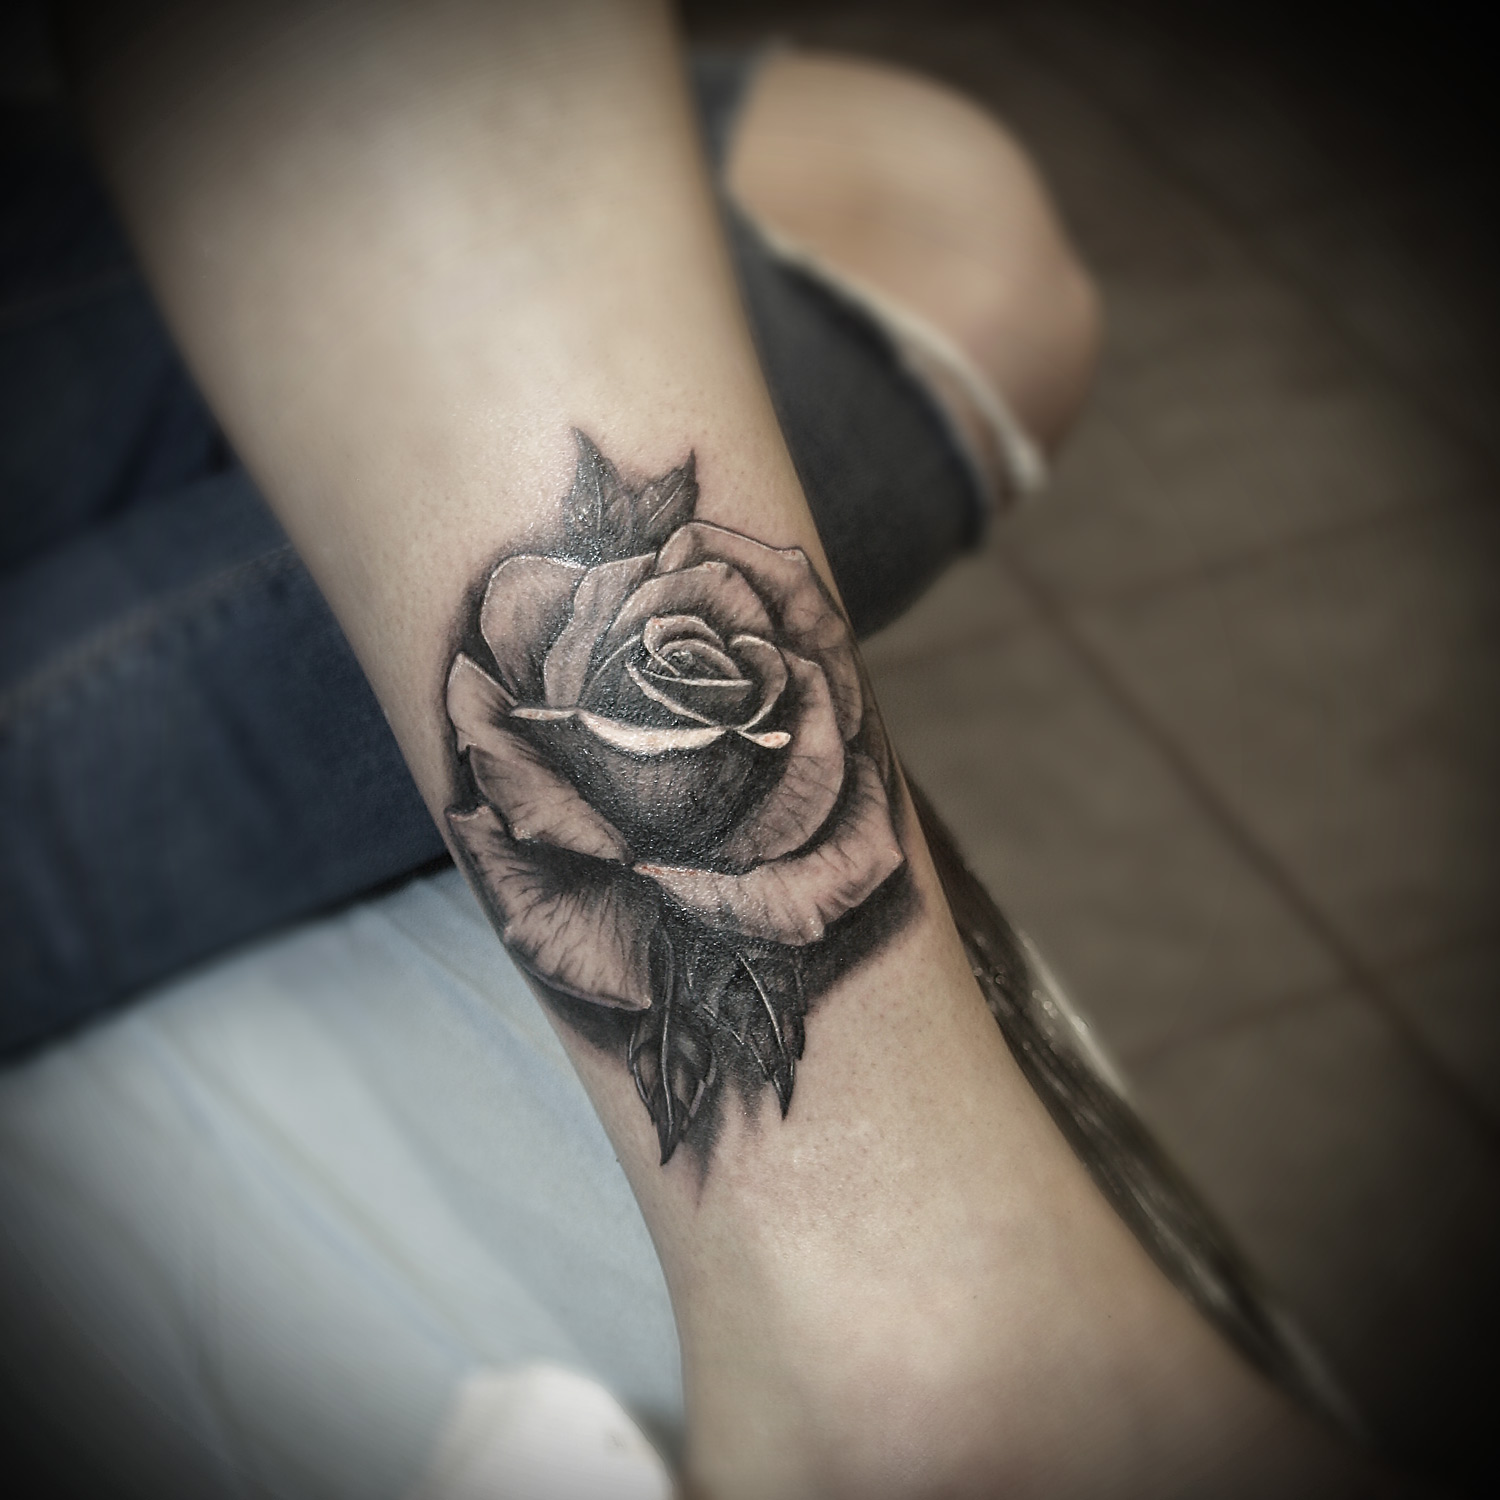 sorn-smb-tattoo-realism-rose.jpg